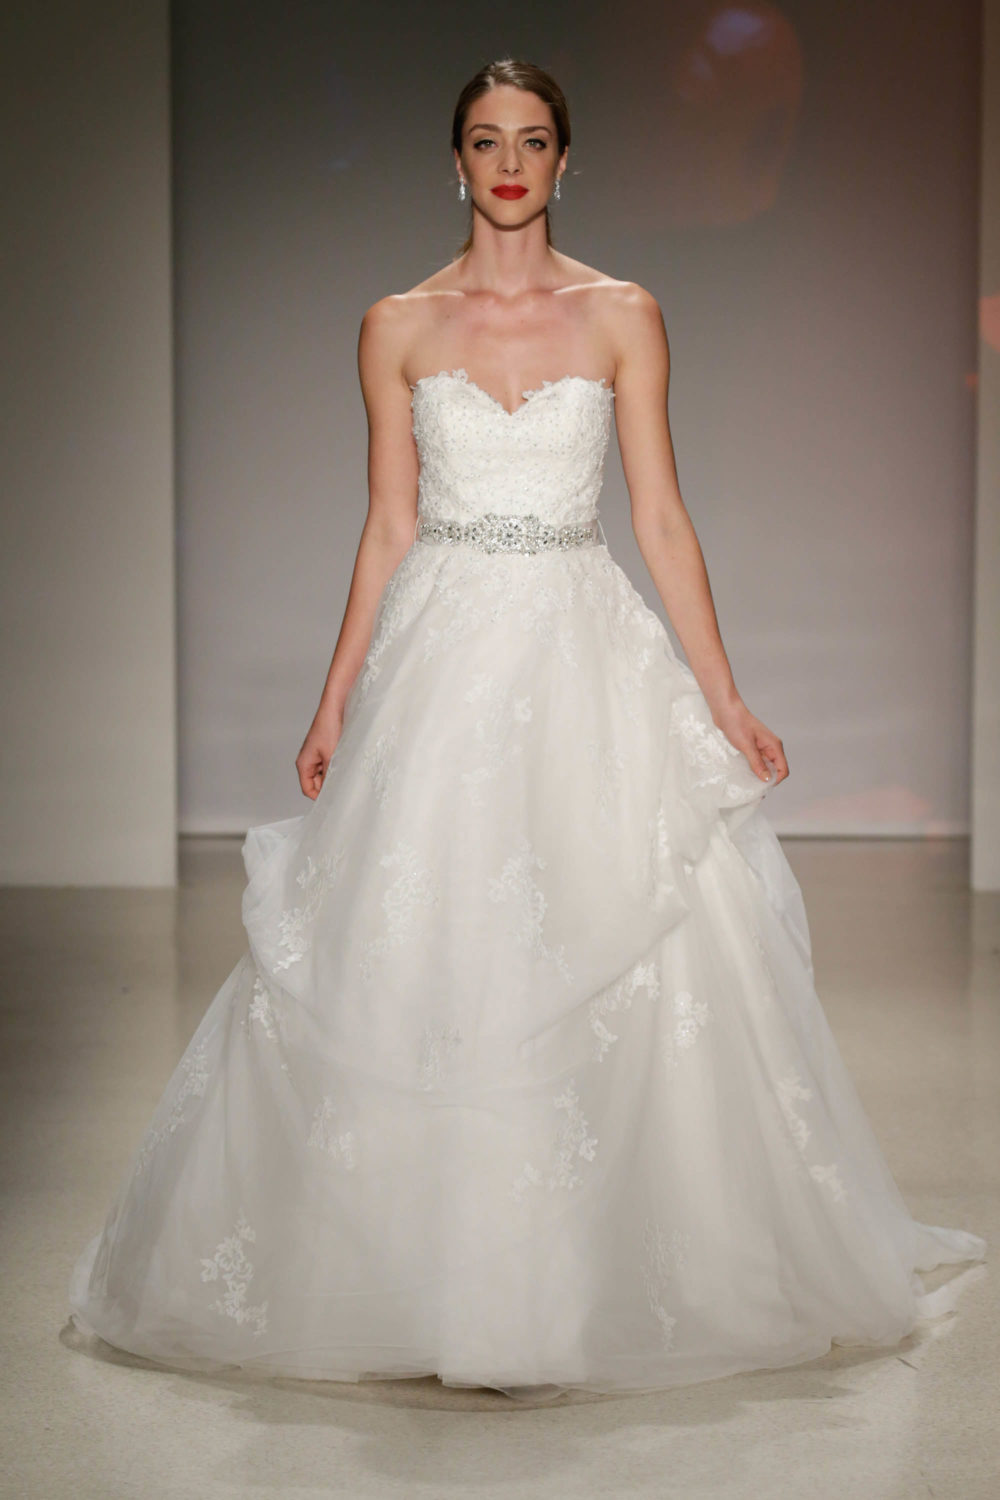 Belle Beauty And The Beast Wedding Dress Alfred Angelo